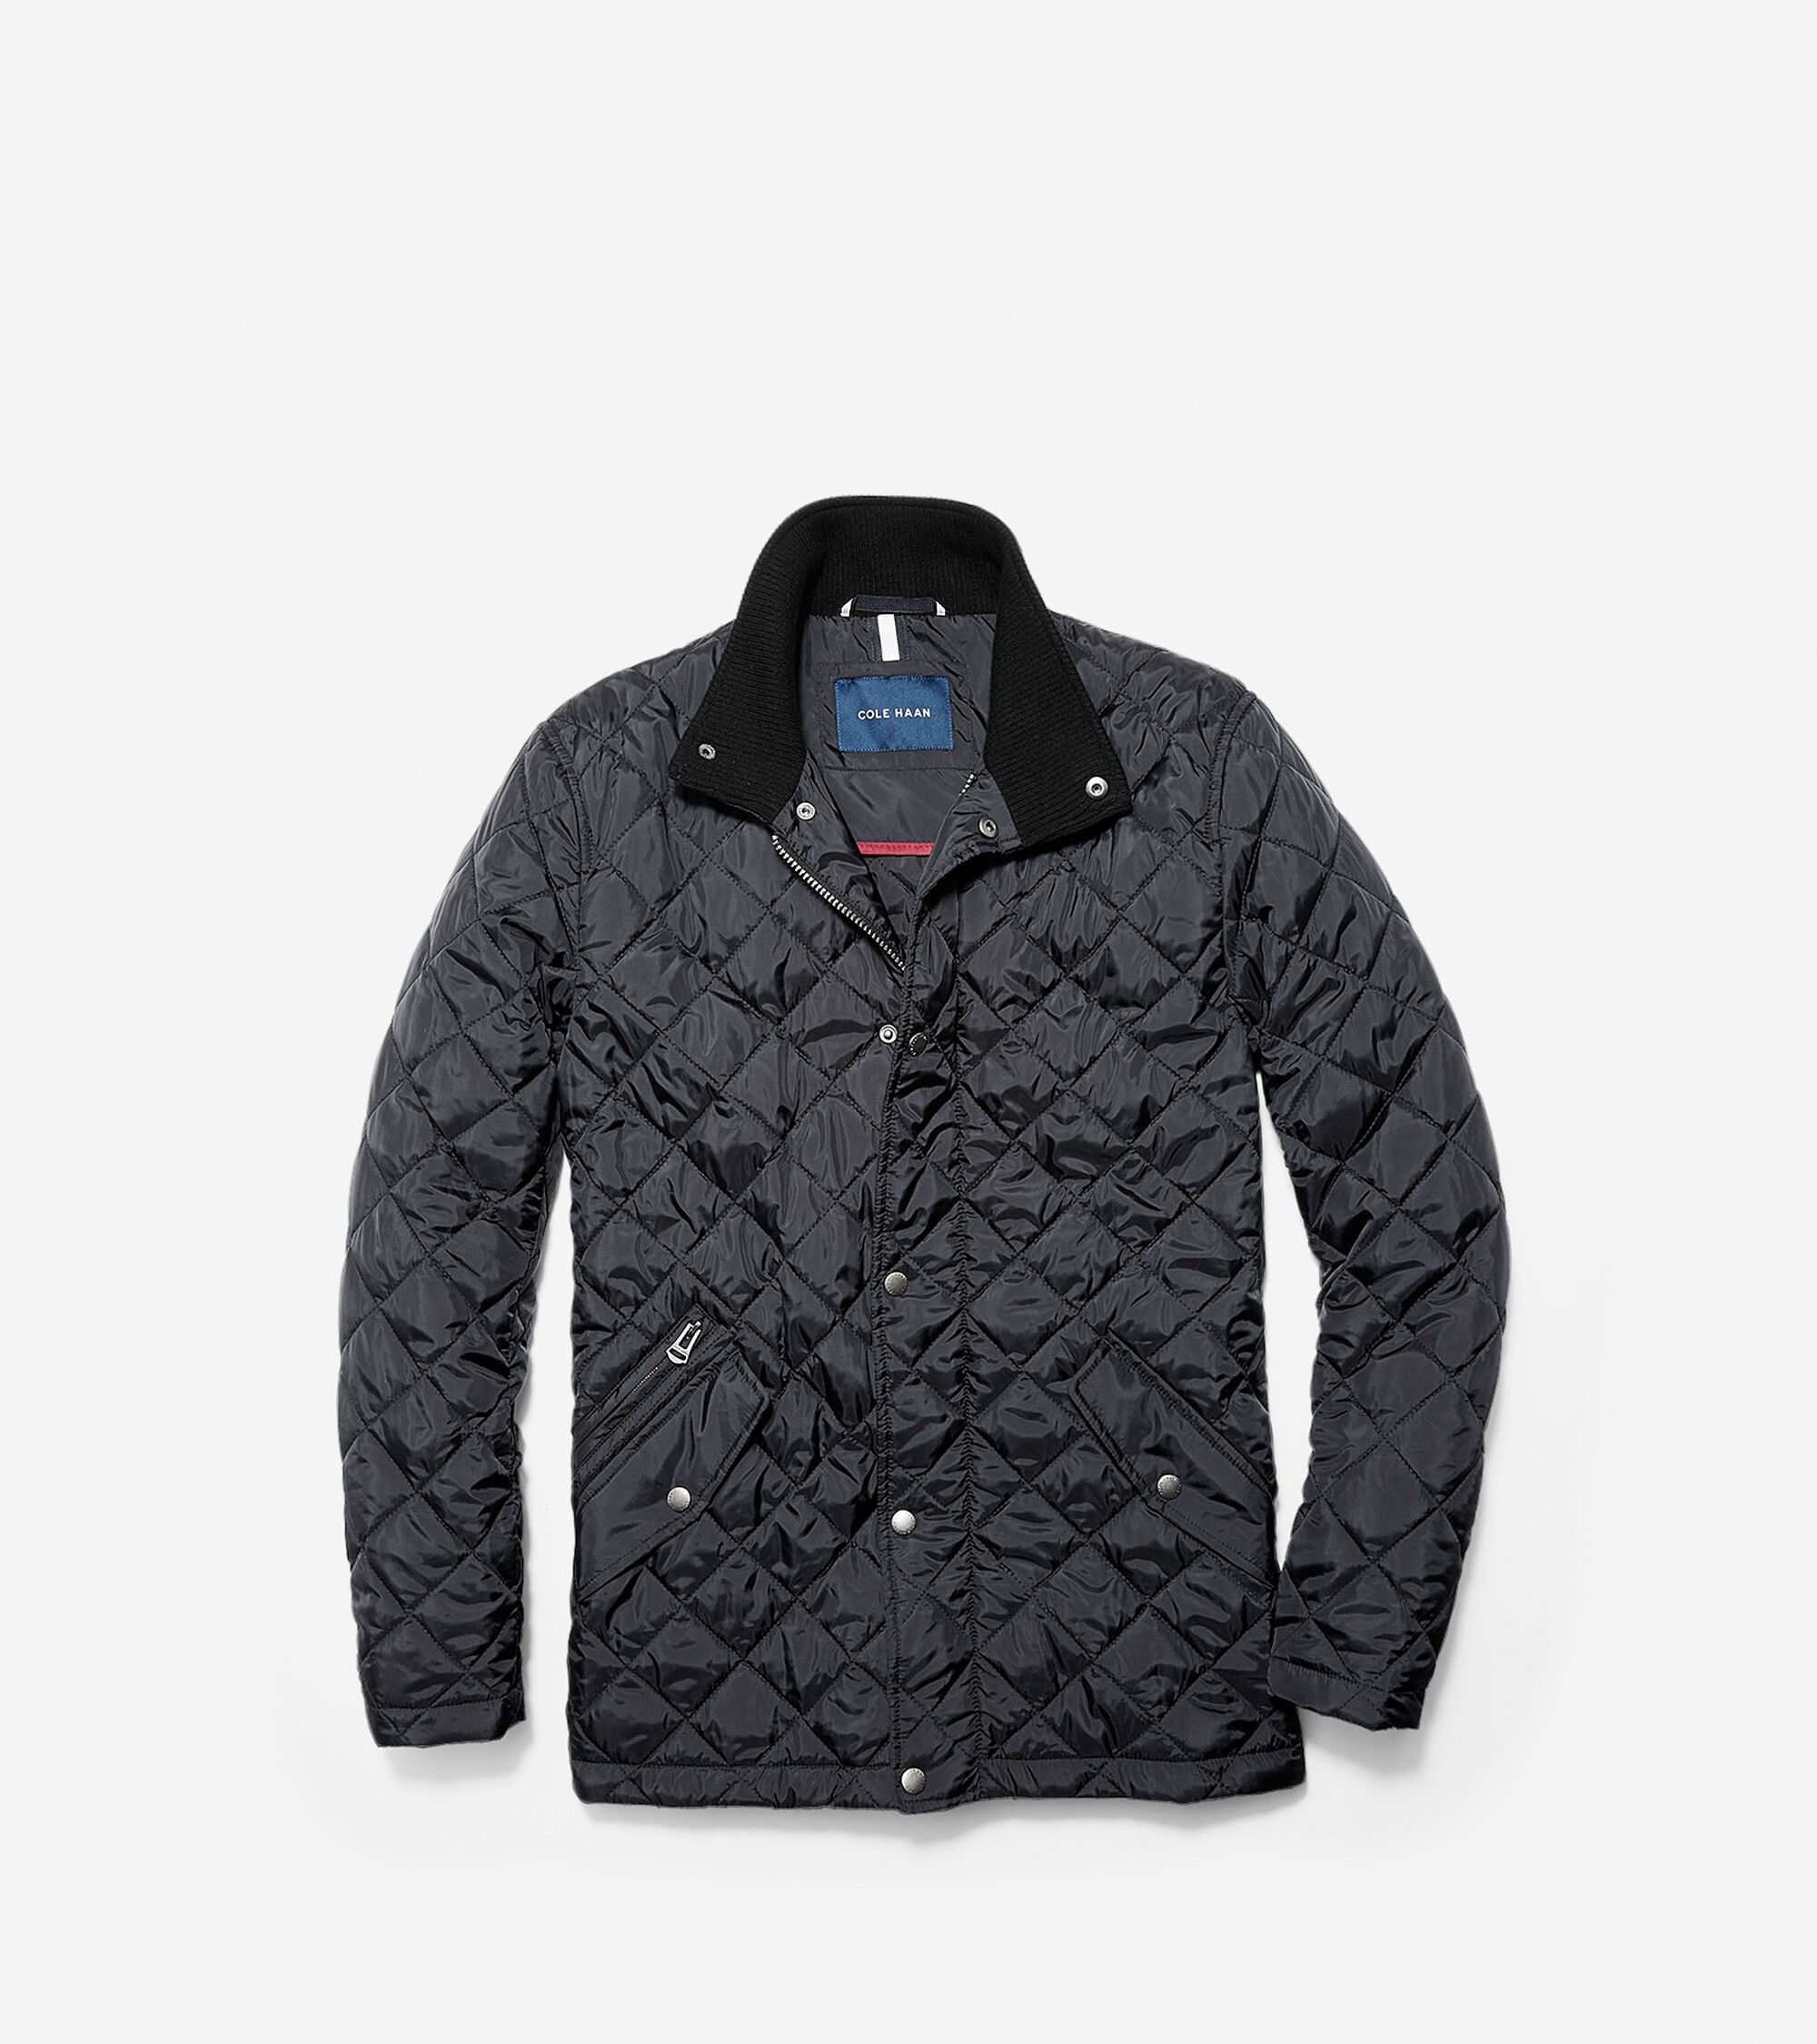 Mens Quilted Stand Co Jacket In Black Cole Haan